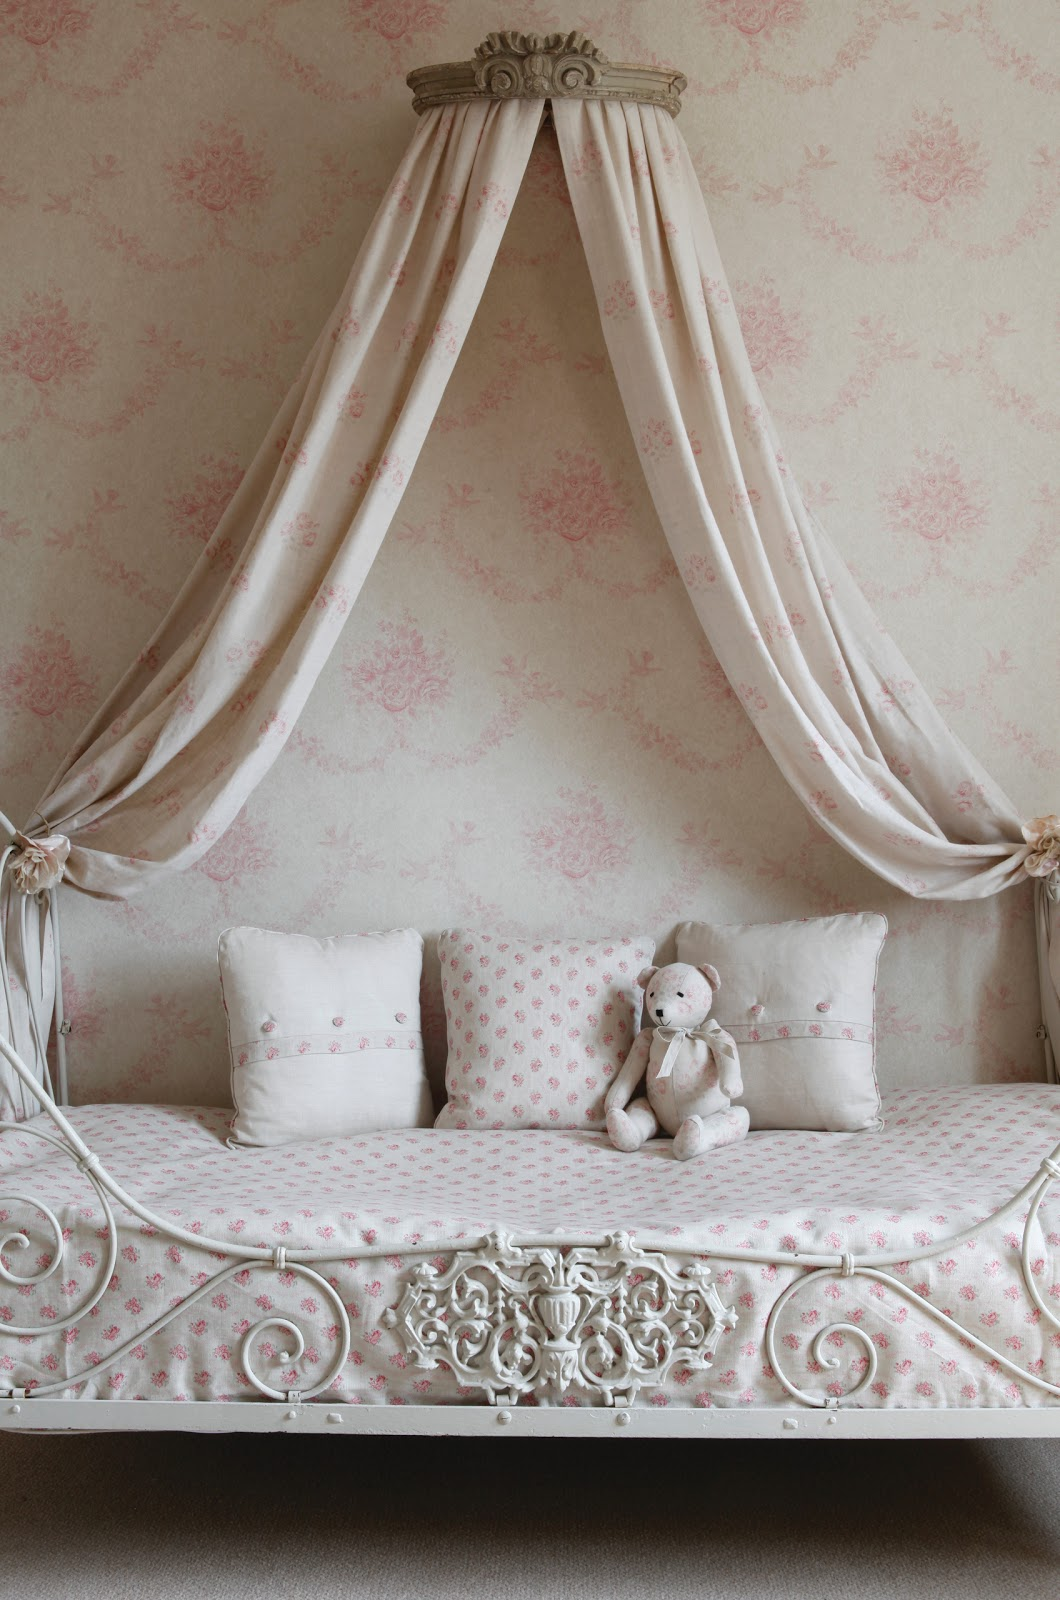 toile jouy para beb s trendy children blog de moda infantil. Black Bedroom Furniture Sets. Home Design Ideas